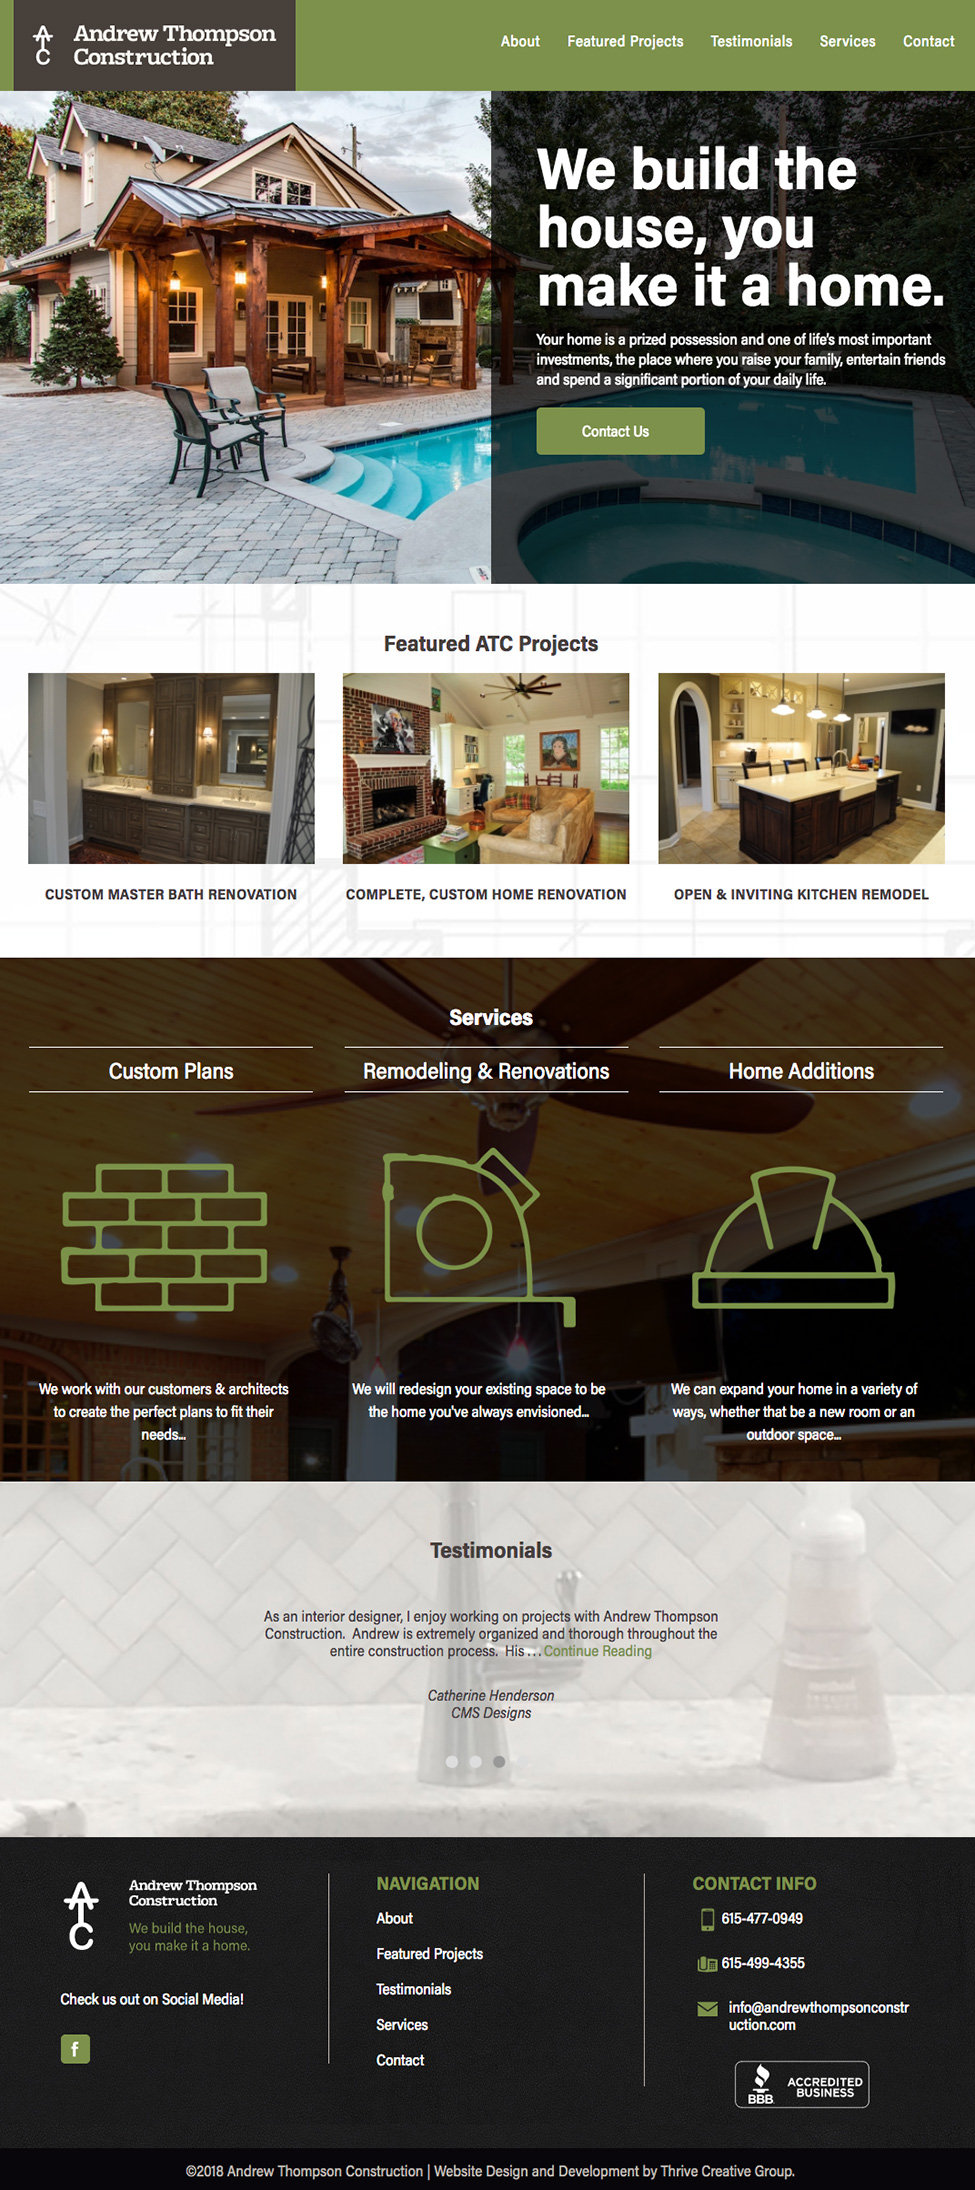 Andrew Thompson Construction Website Home Page